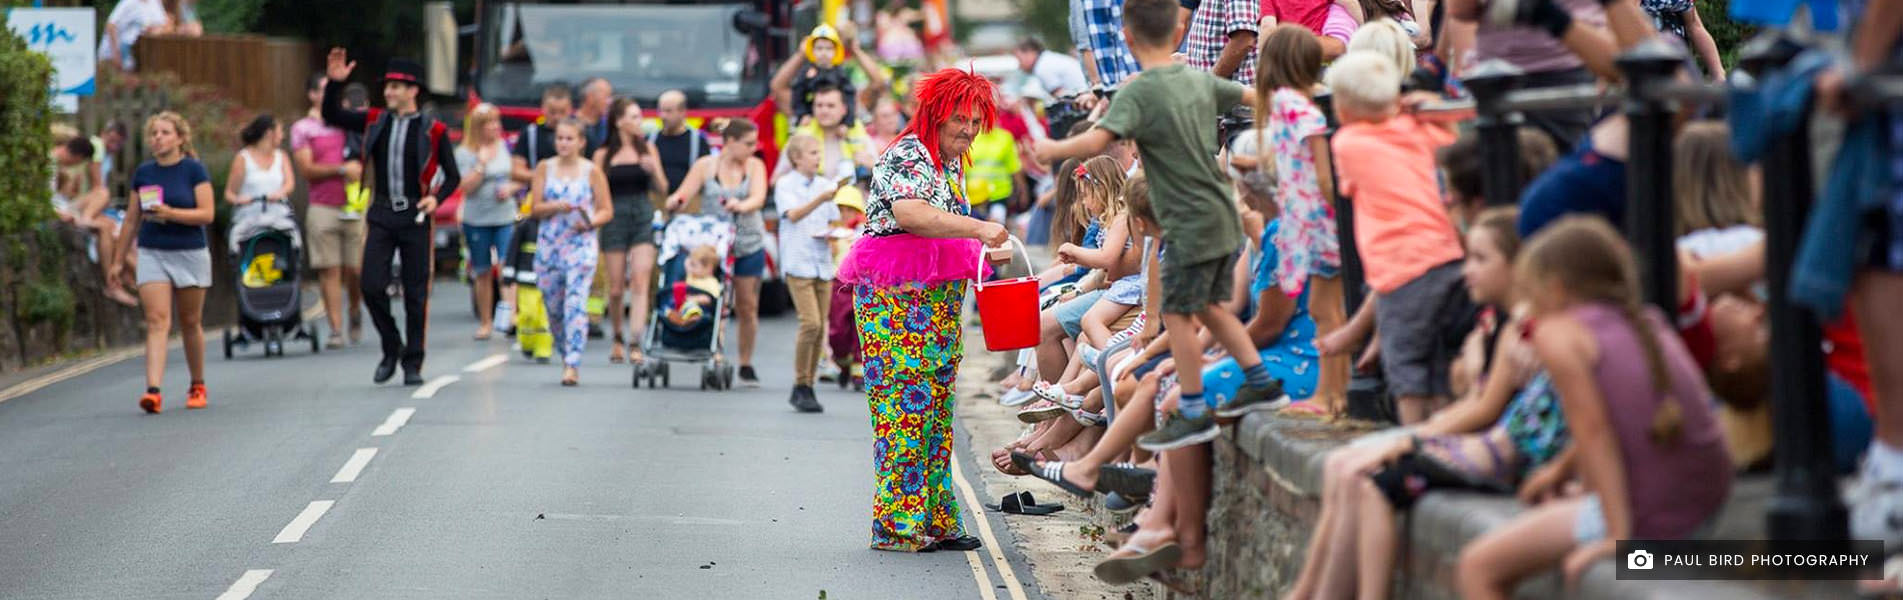 Newport Carnival Isle of Wight Collecting